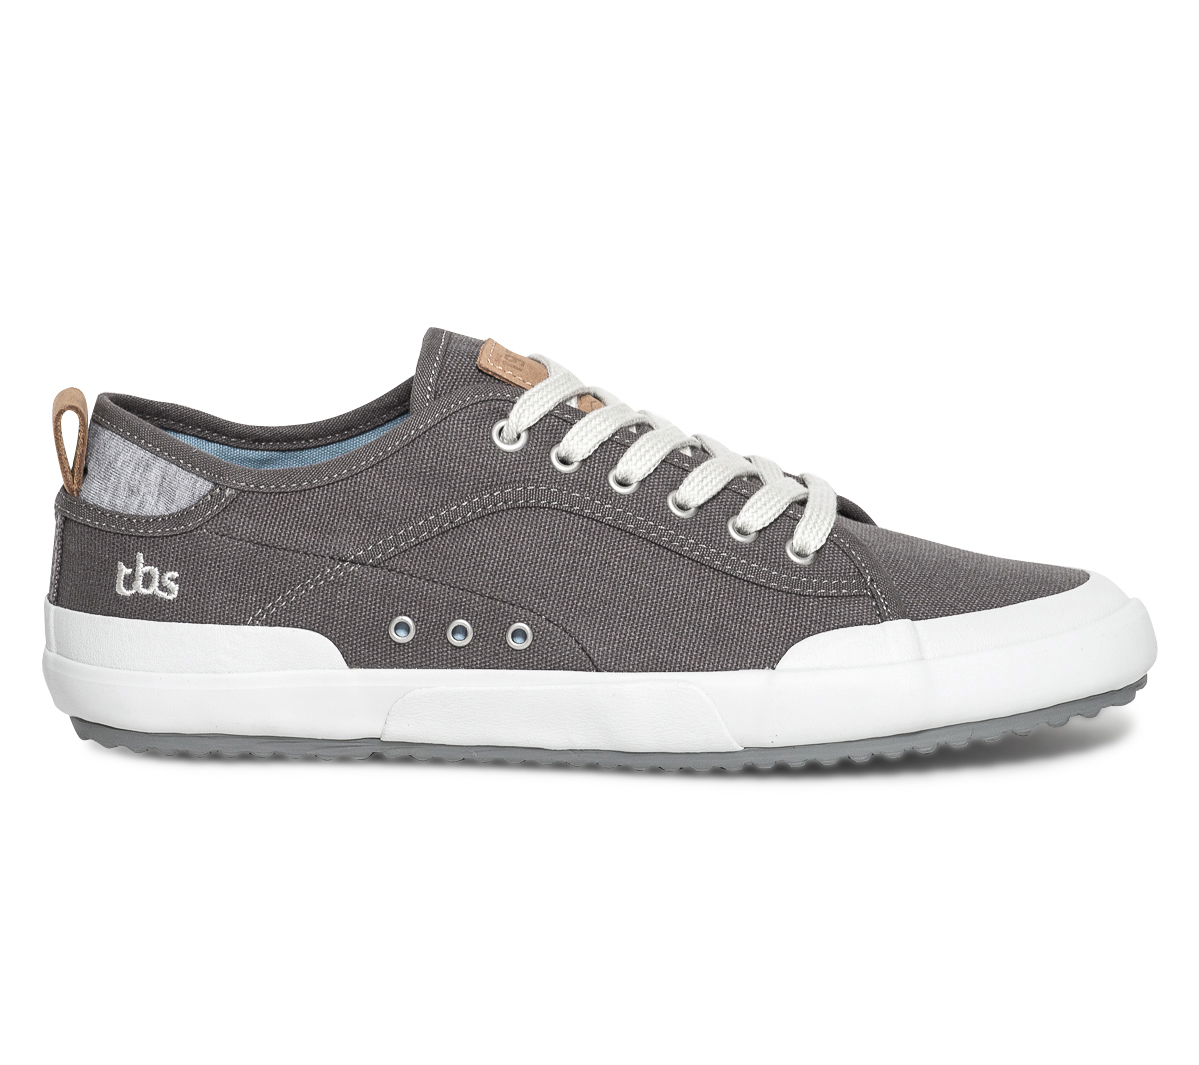 Tennis Anthracite Toile Tbs Gris En FTlK1Jc